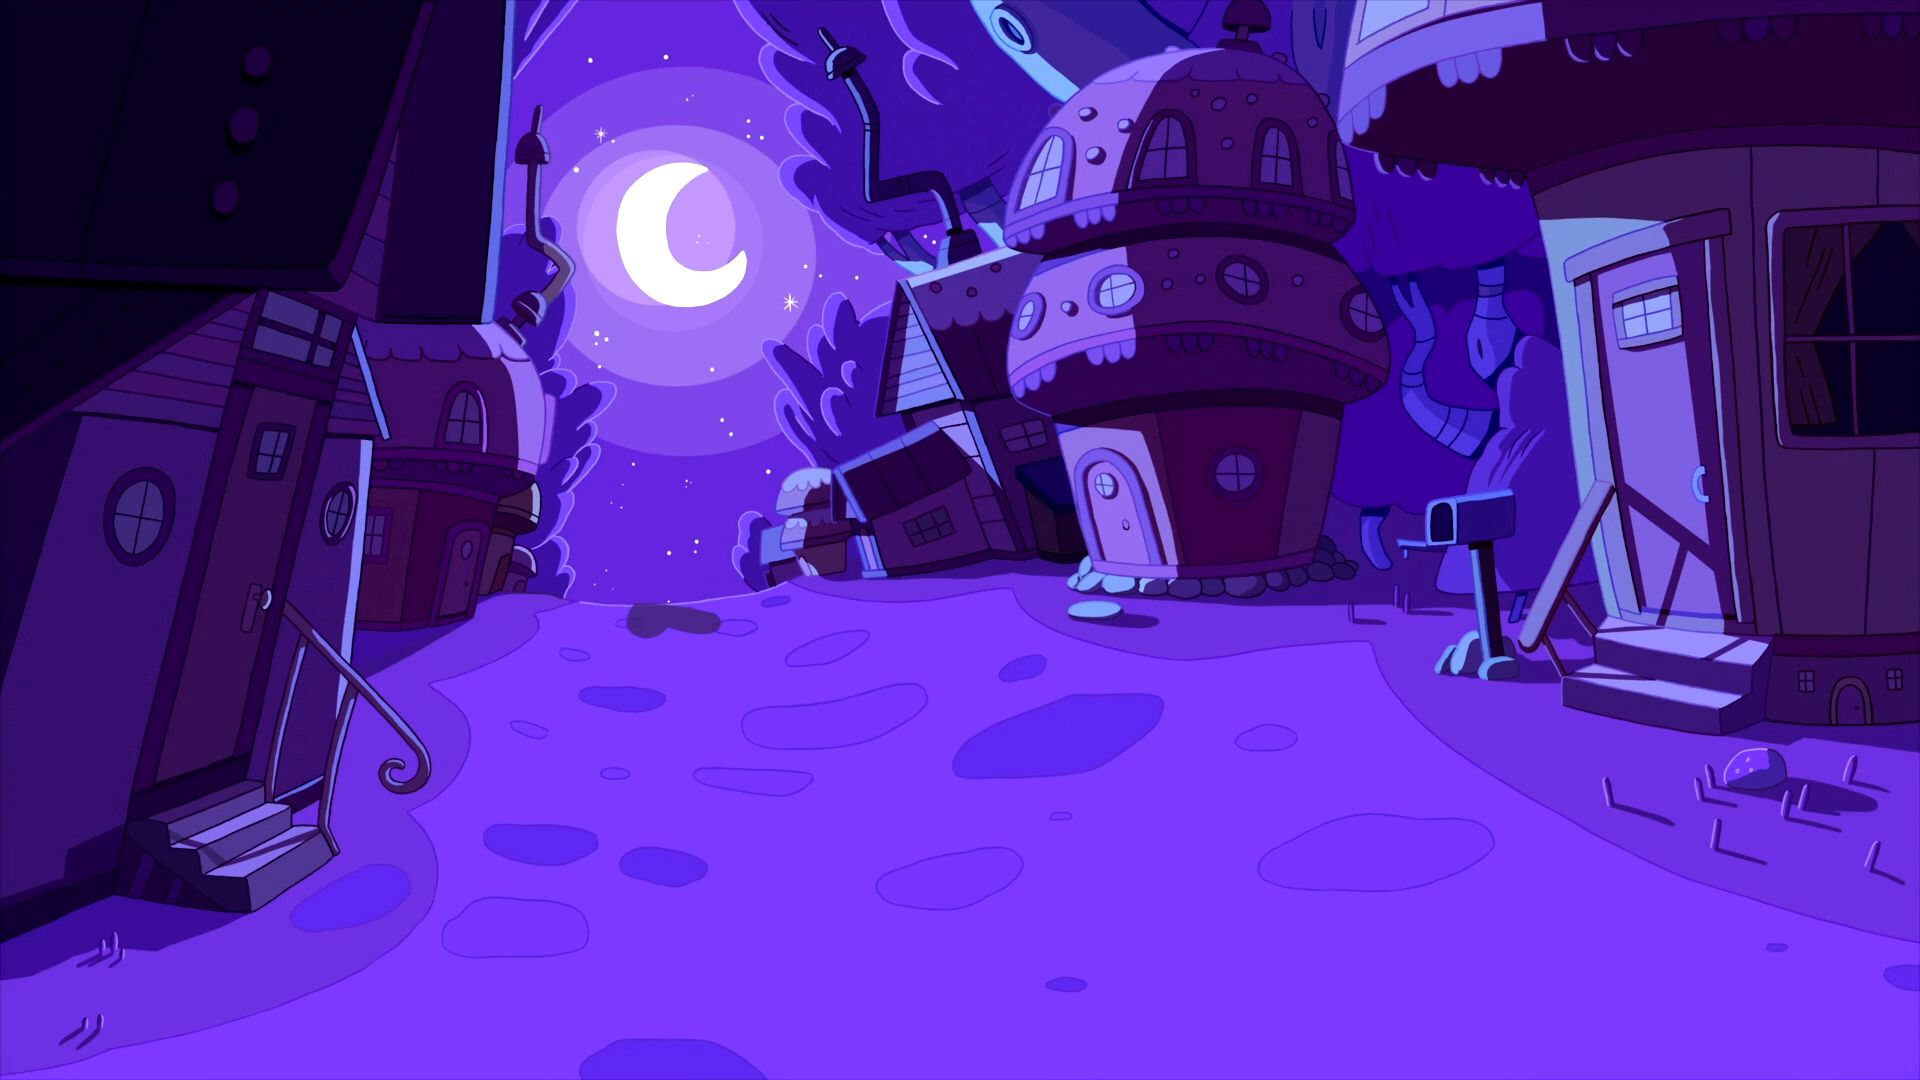 S01E07 - Streets of Candy | Adventure time wallpaper ...